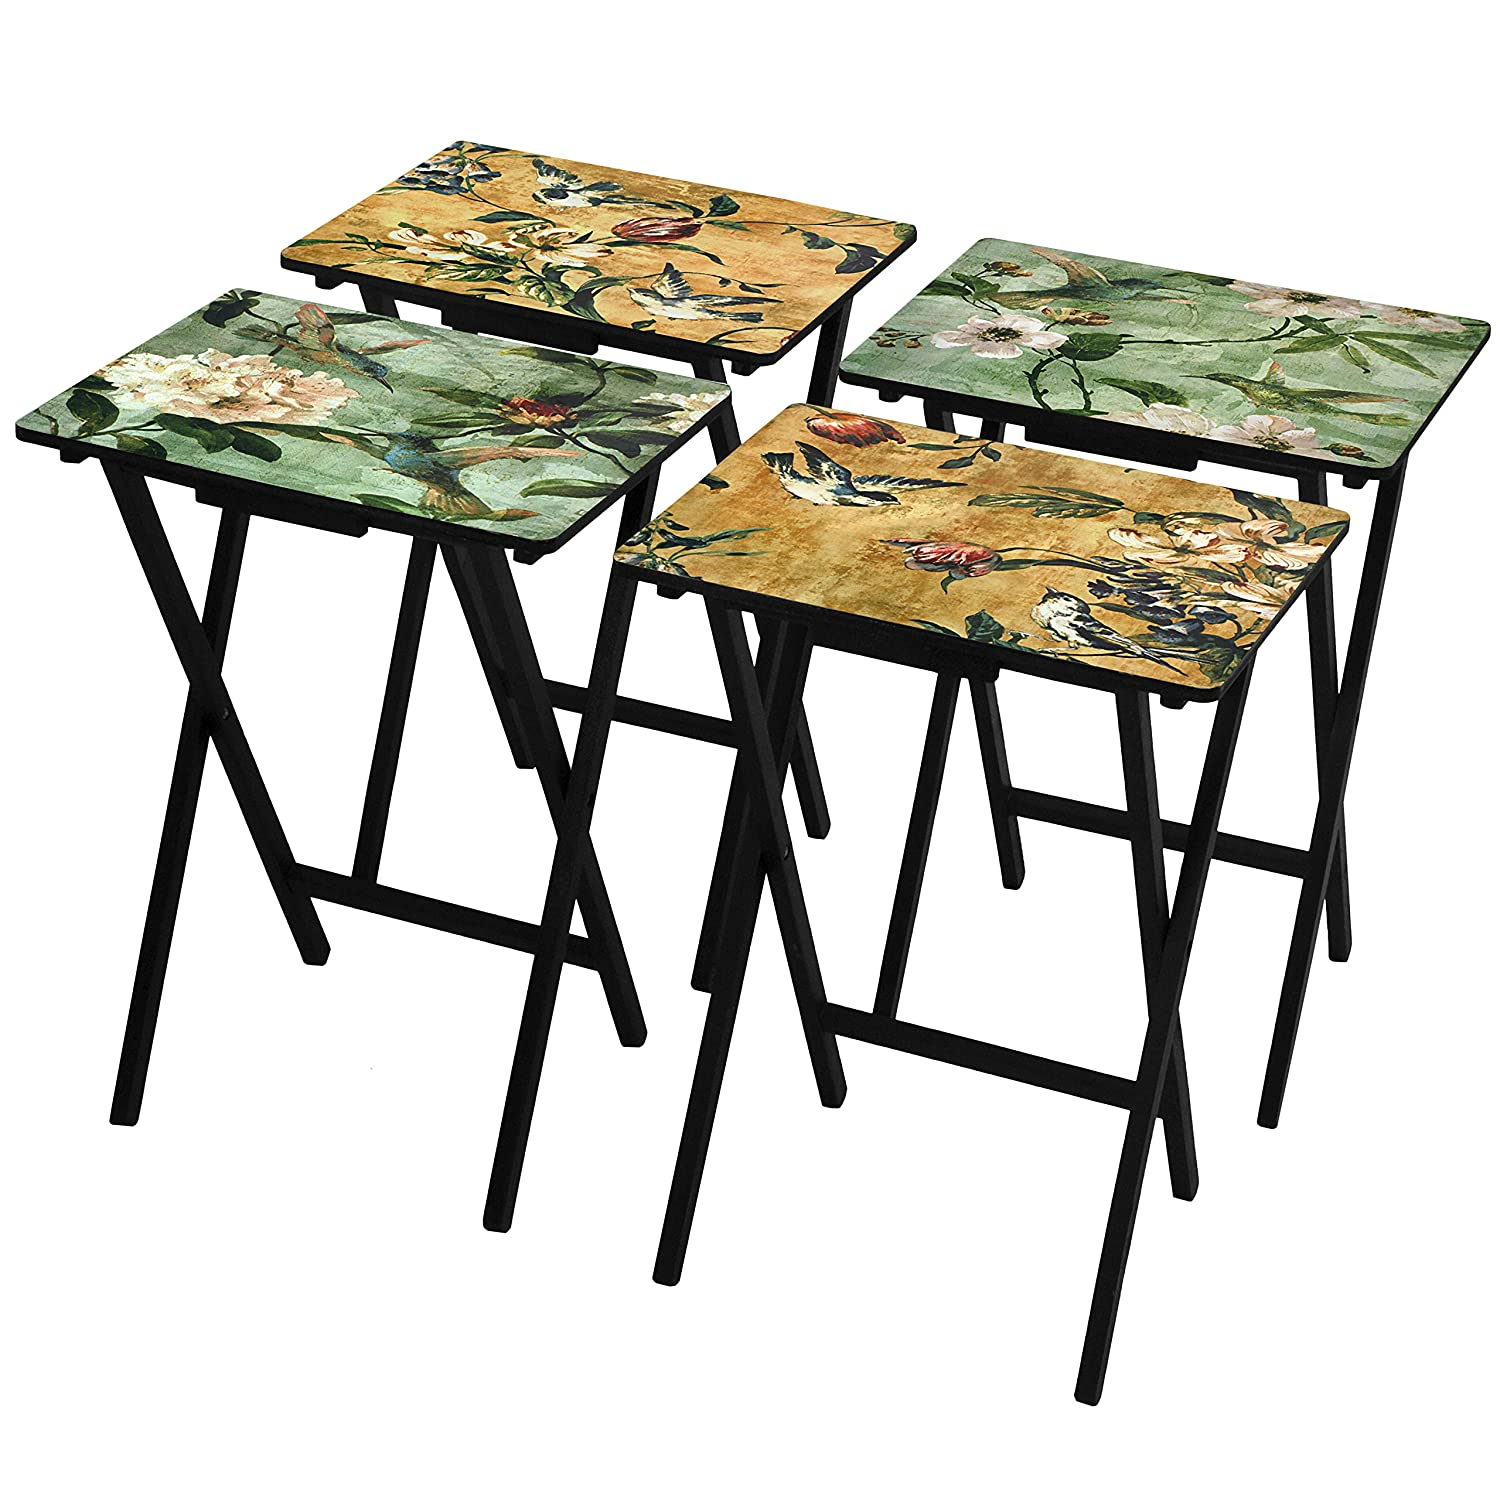 ORIENTAL FURNITURE Birds and Flowers TV Tray Set with Stand CAN-TVSET-BIRDS